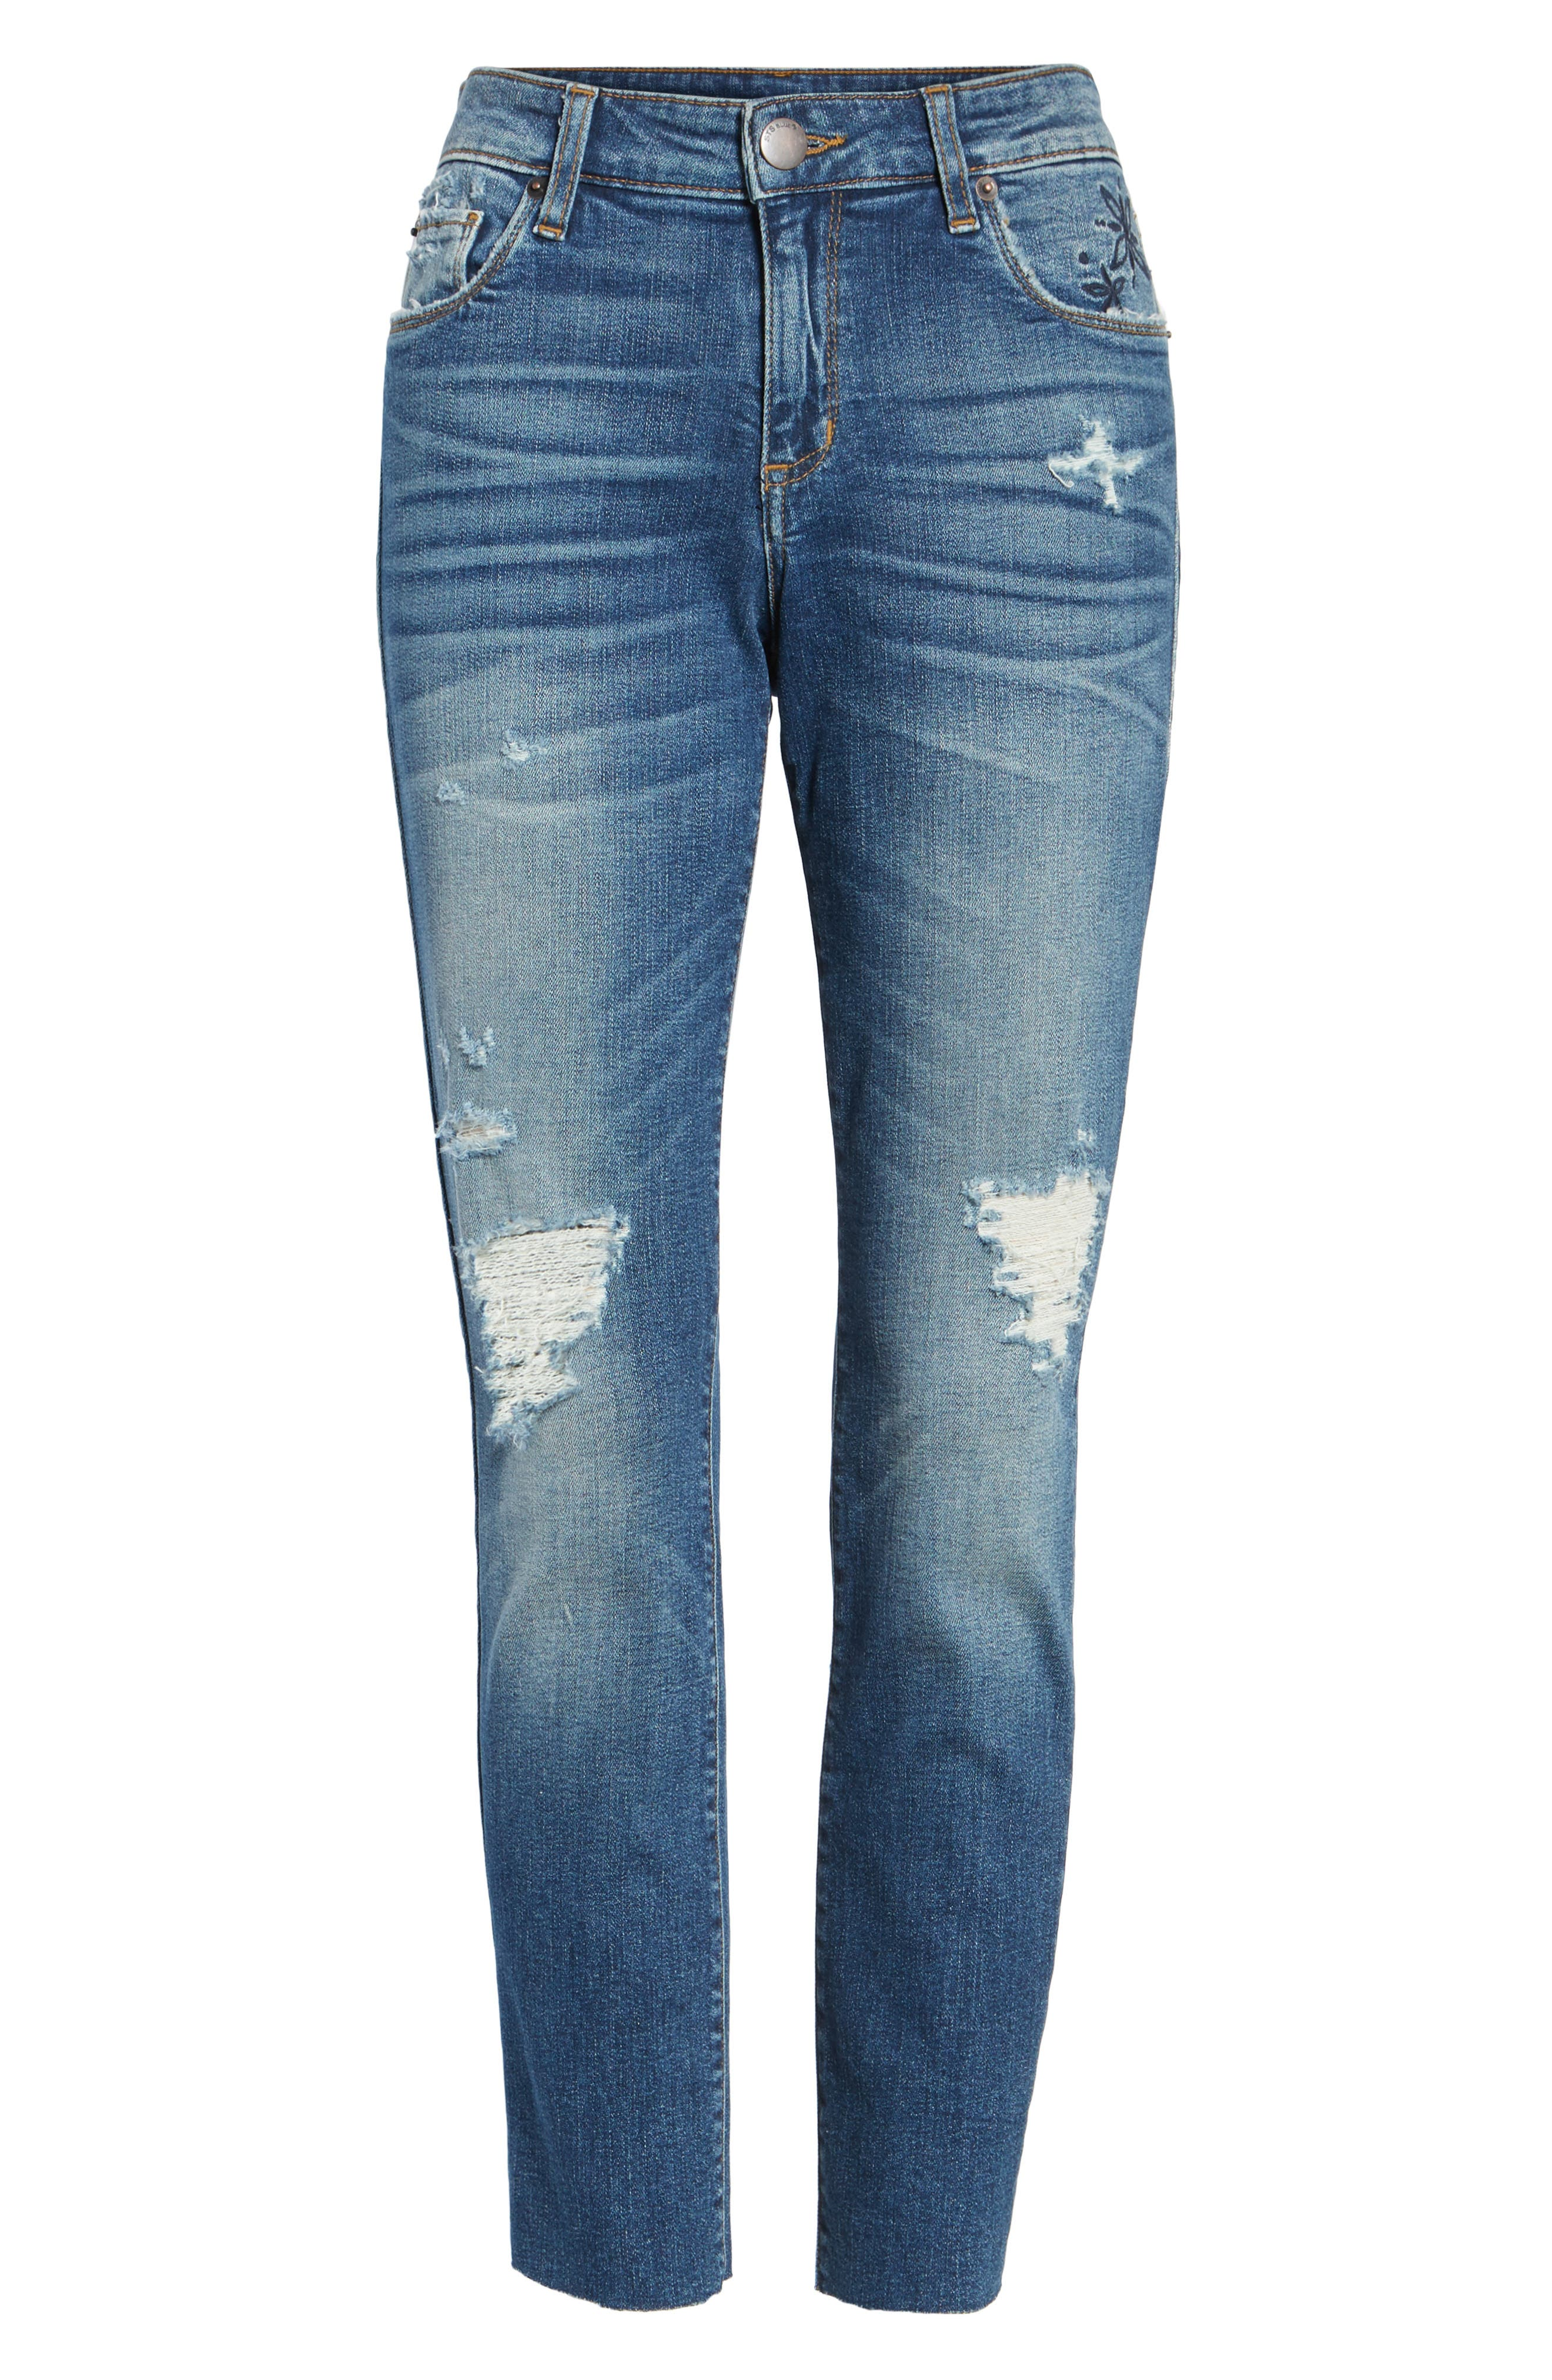 Taylor Distressed and Embroidered Straight Leg Jeans,                             Alternate thumbnail 6, color,                             Rosedale